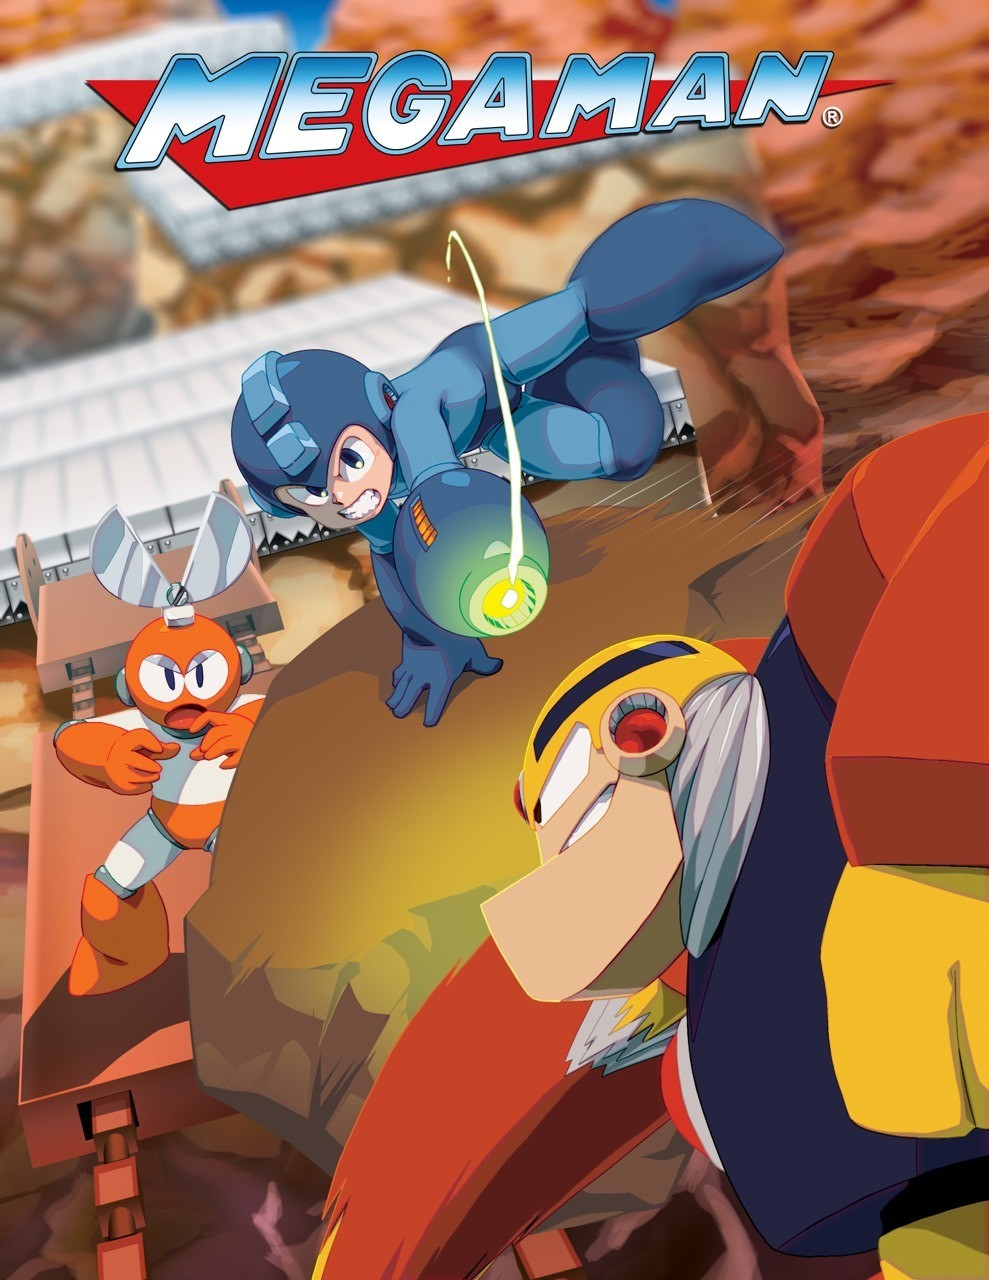 Mega Man I - Official art from the Mega Man Legacy Collection game.